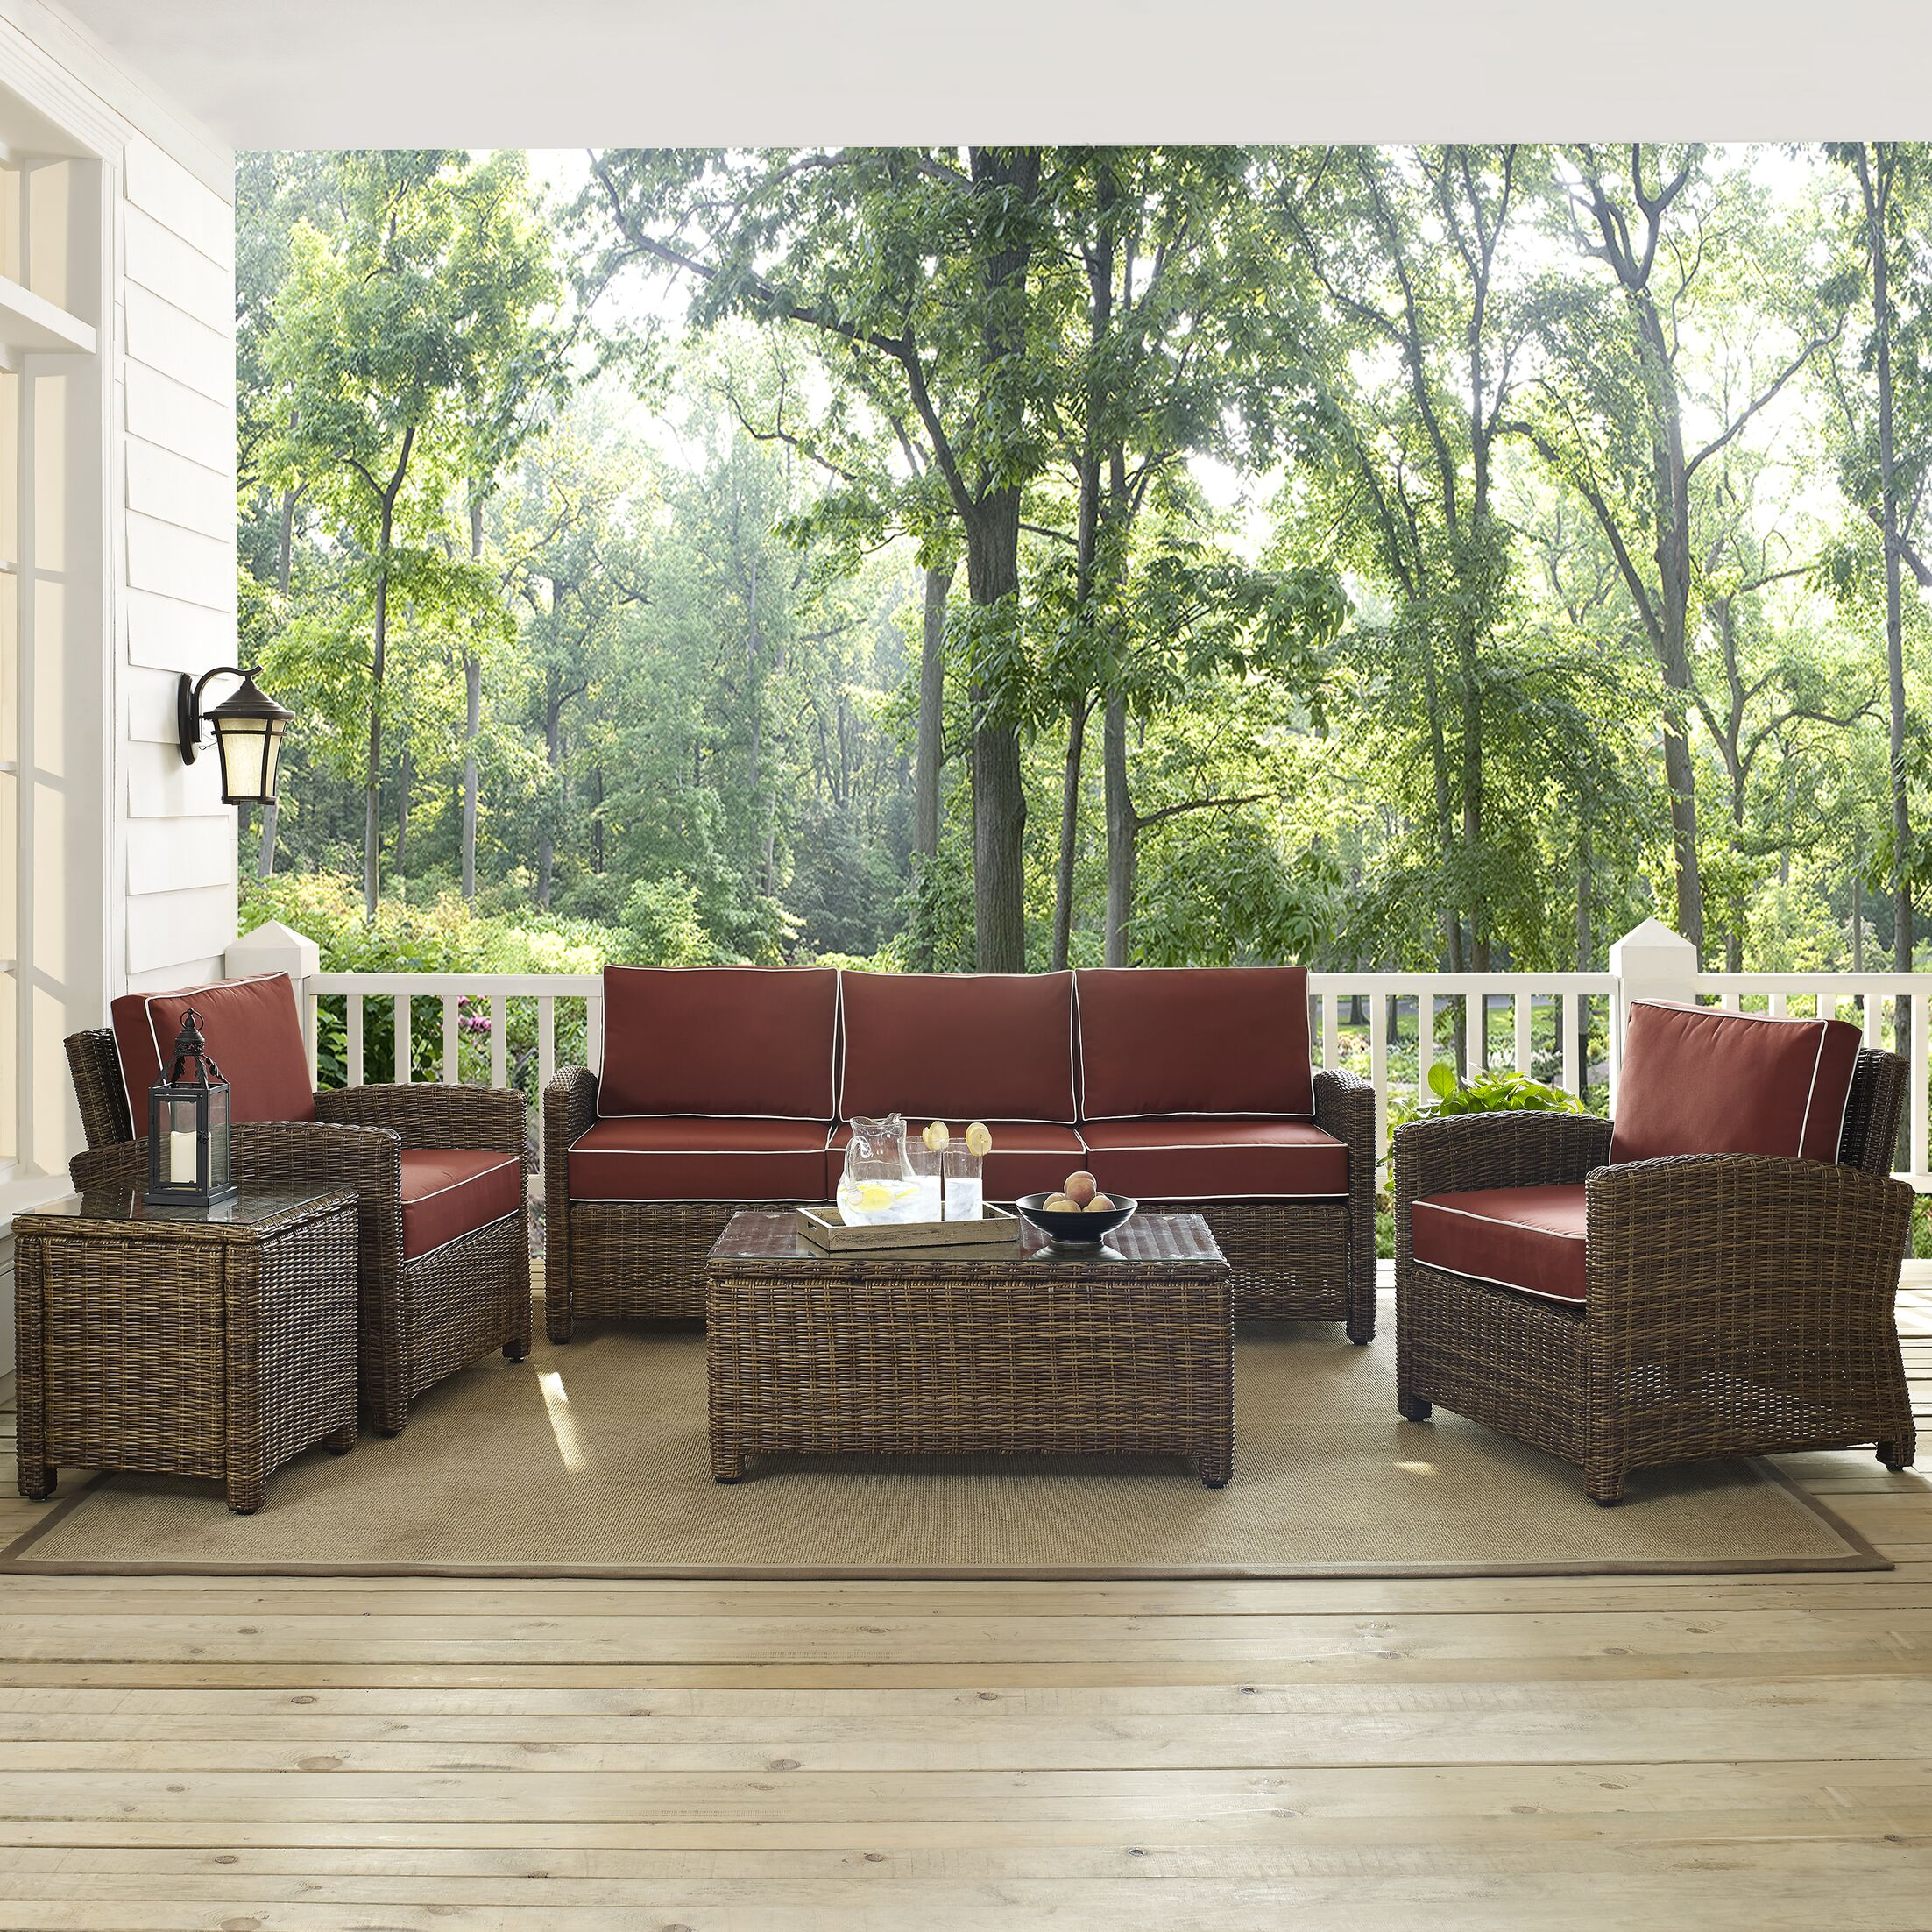 Dardel 5 Piece Rattan Sofa Set  with Cushions Fabric: Sangria